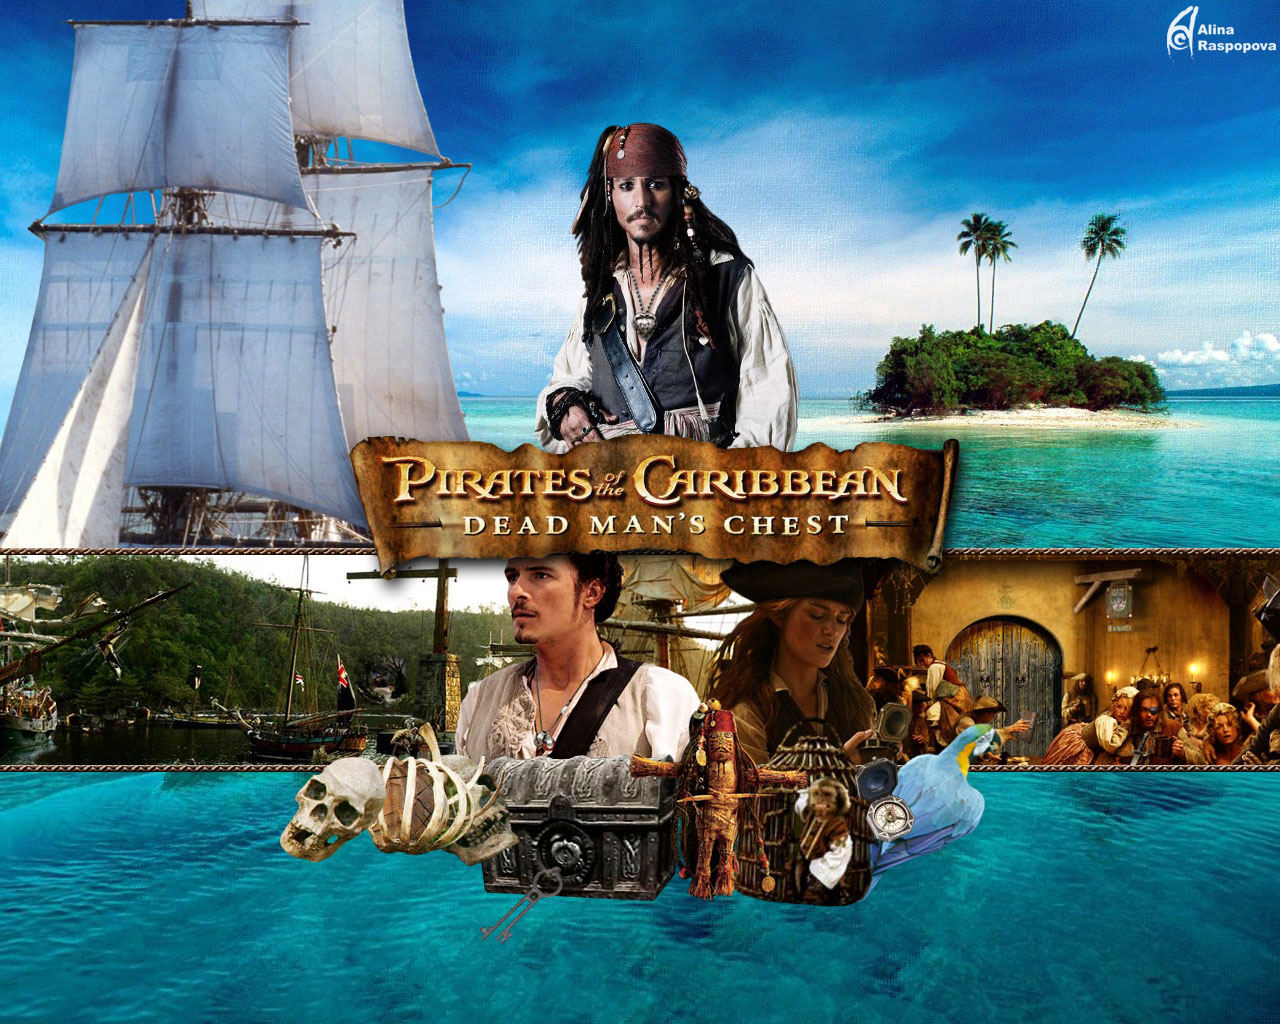 ... Film and music piracy essay: How has digital piracy influenced the